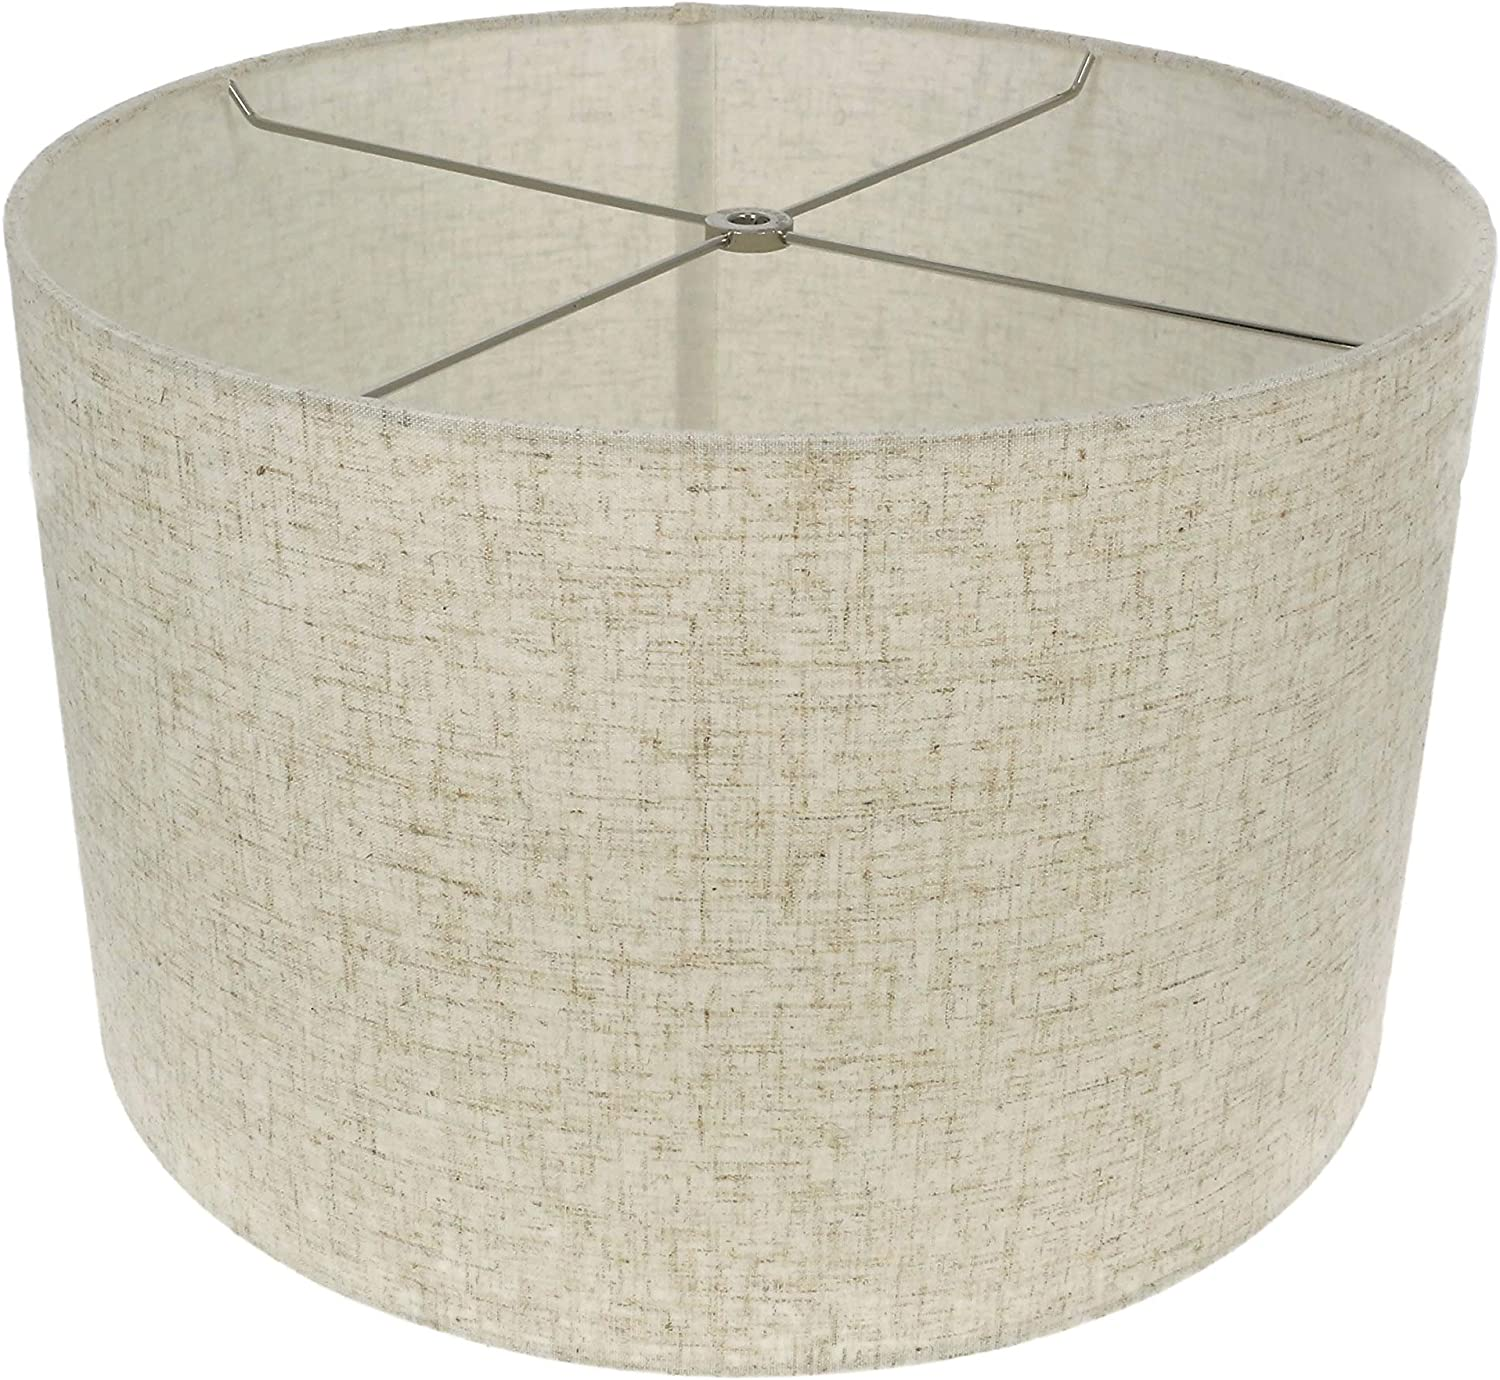 Urbanest Linen Drum Lamp Shade 16 Inch By 16 Inch By 10 Inch Cottage Spider Fitter